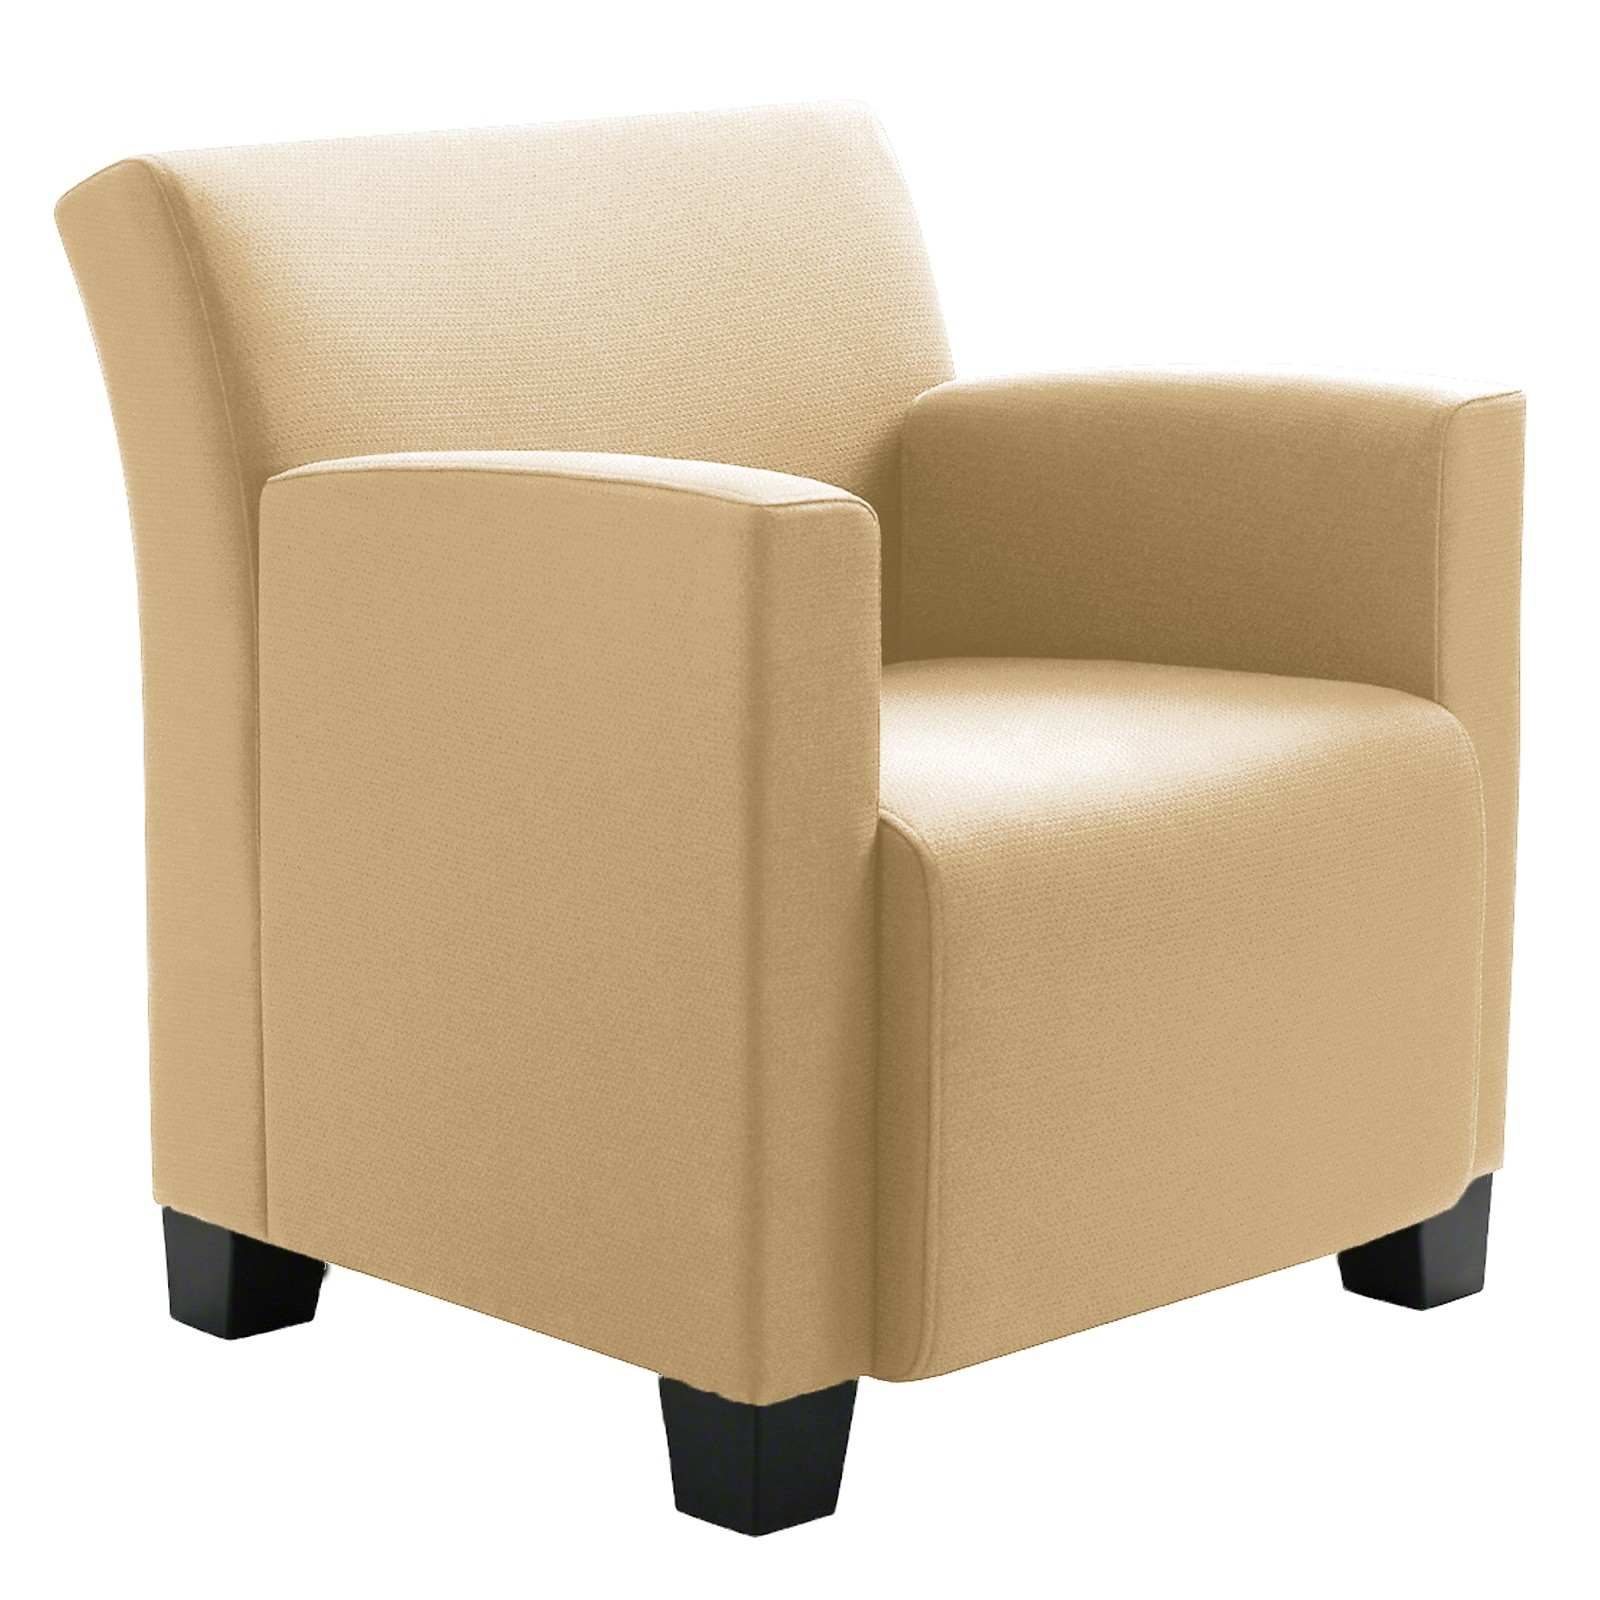 Steelcase lounge chairs - Picture Of Turnstone Jenny Lounge Chair By Steelcase